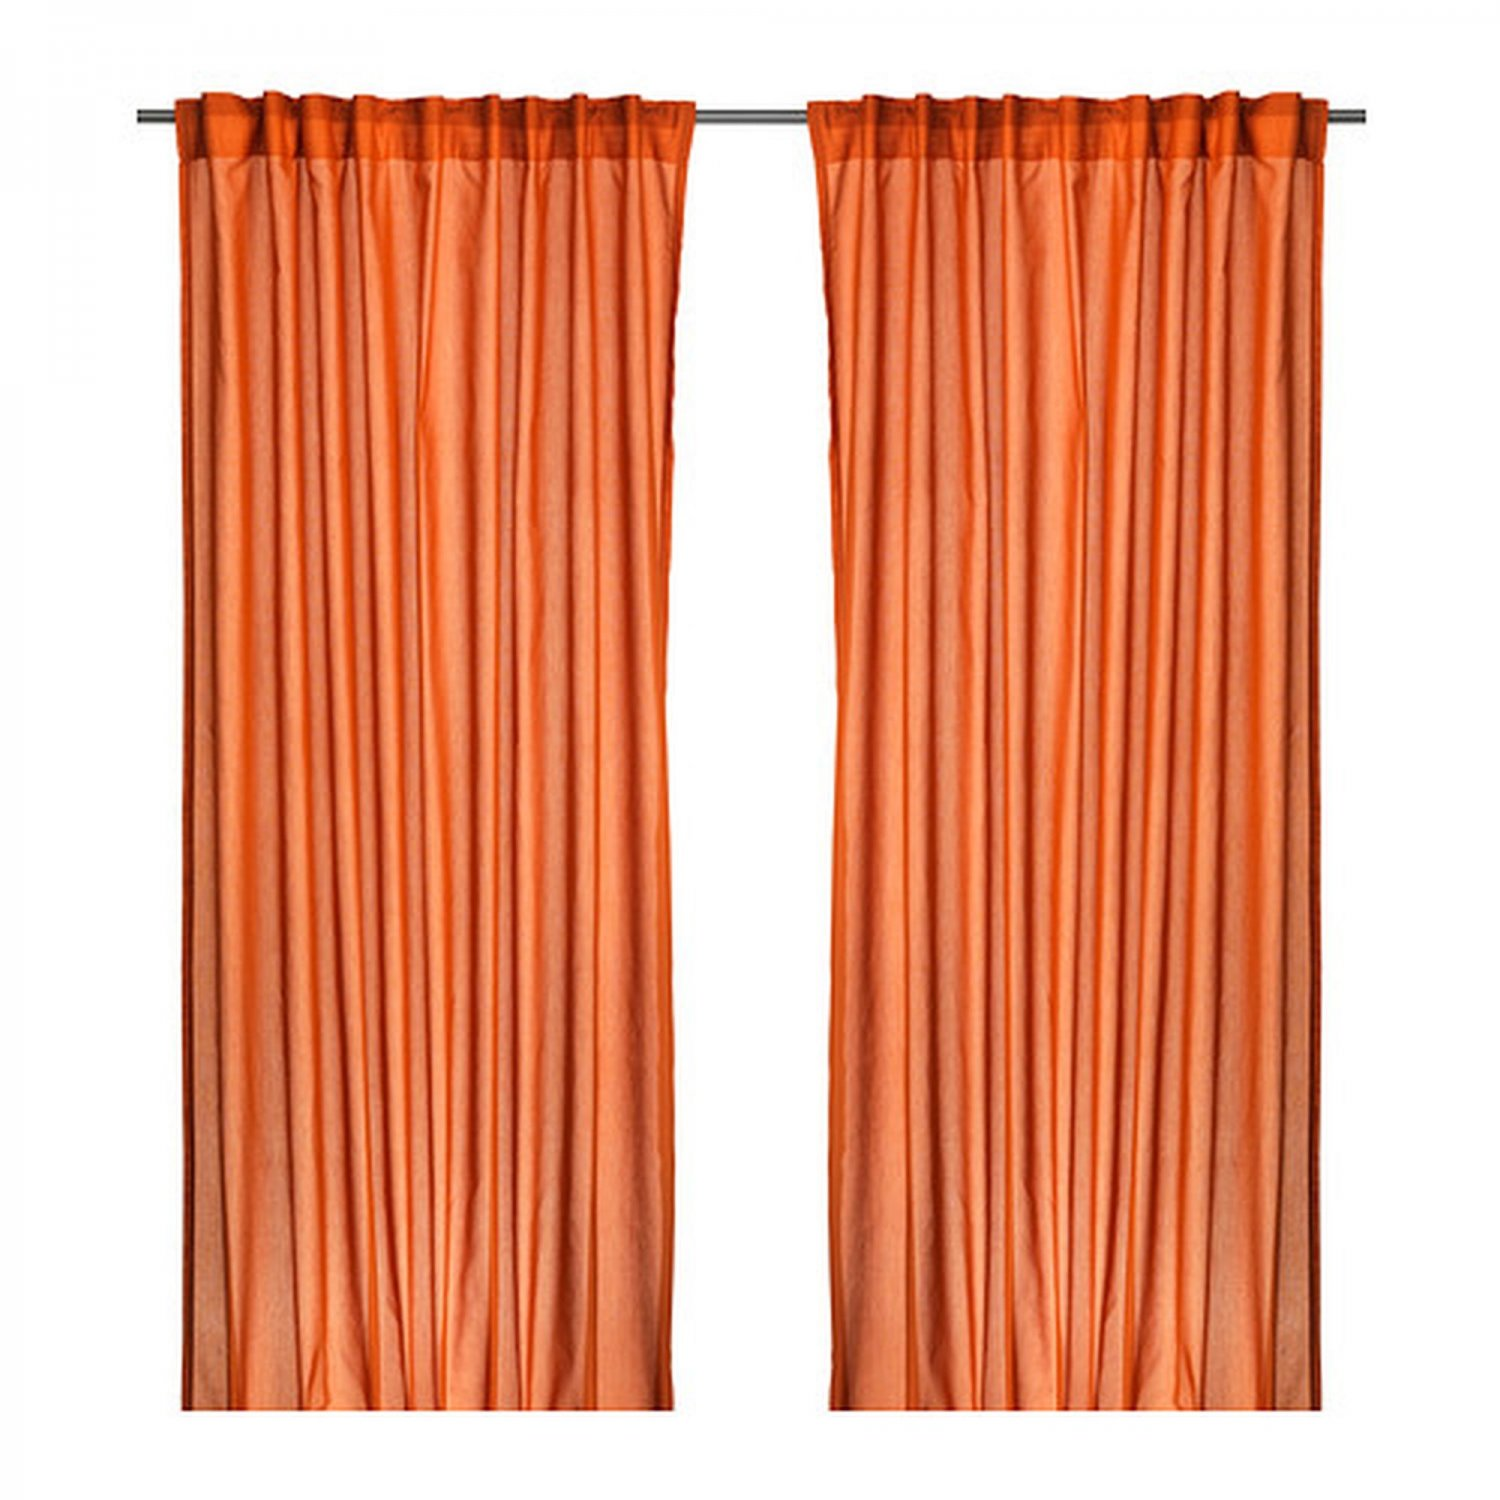 Ikea vivan curtains drapes dark orange 2 panels for Ikea curtain rods uk